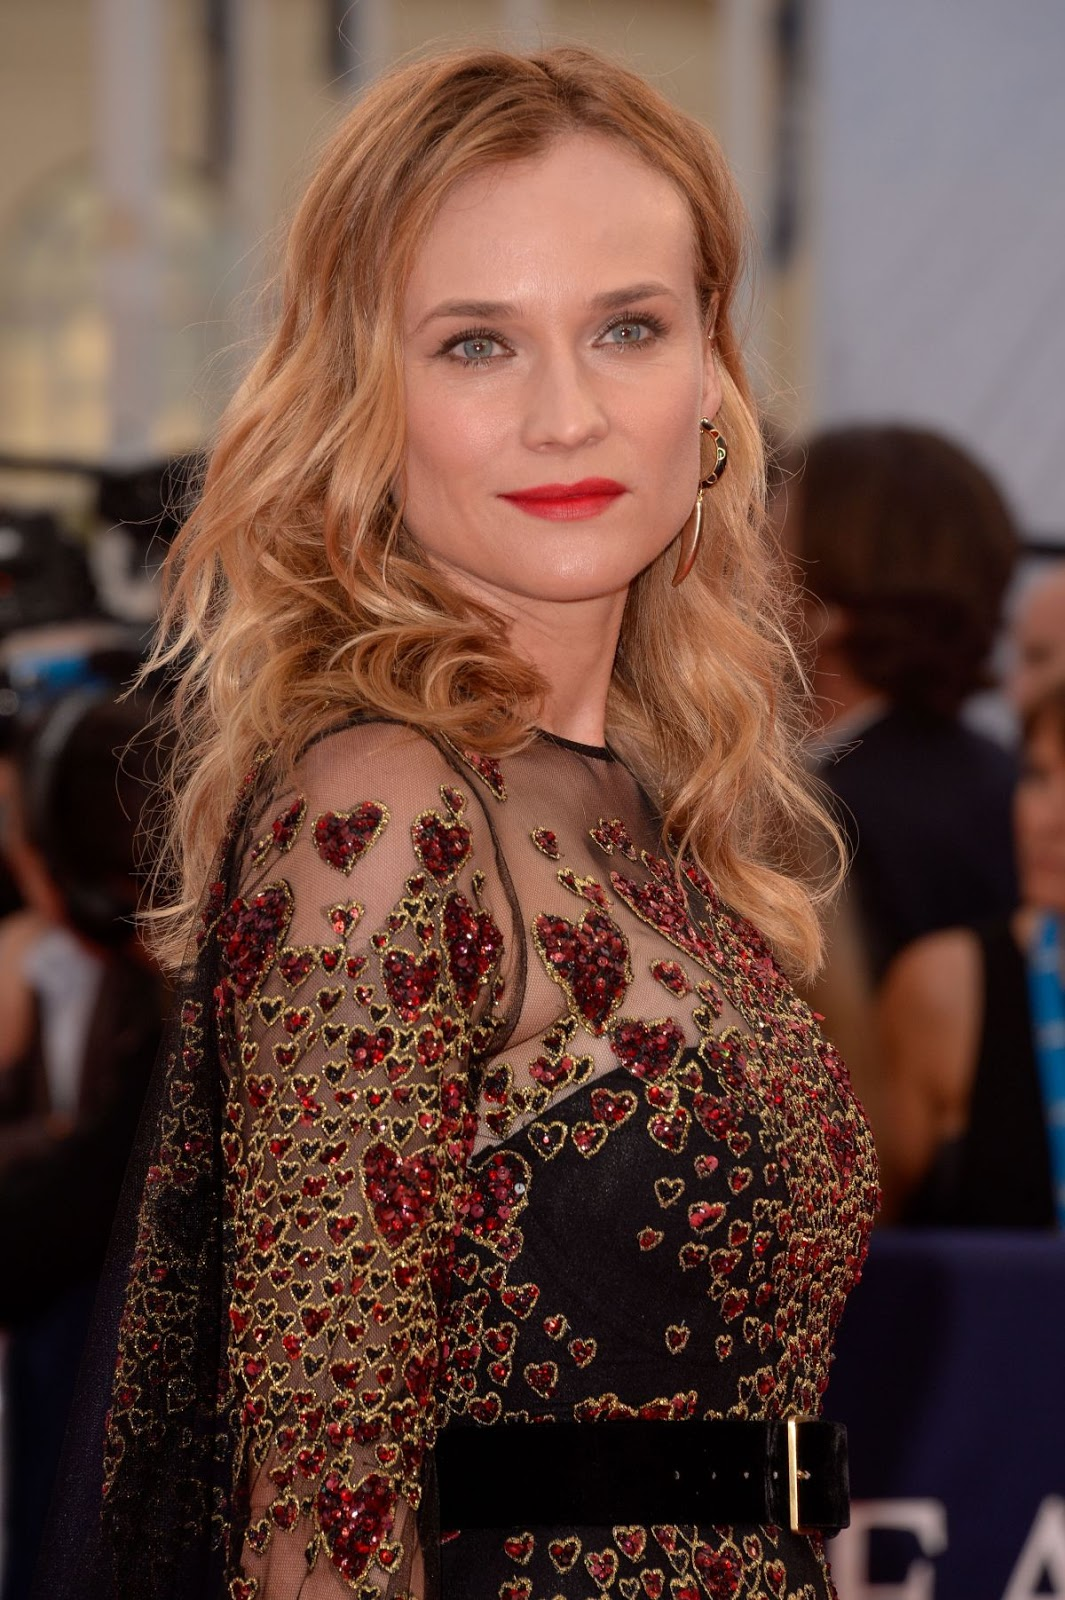 Full 4k Photos & Wallpapers of 'The Infiltrator' actress Diane Kruger At Infiltrator Premiere At 42nd Deauville American Film Festival